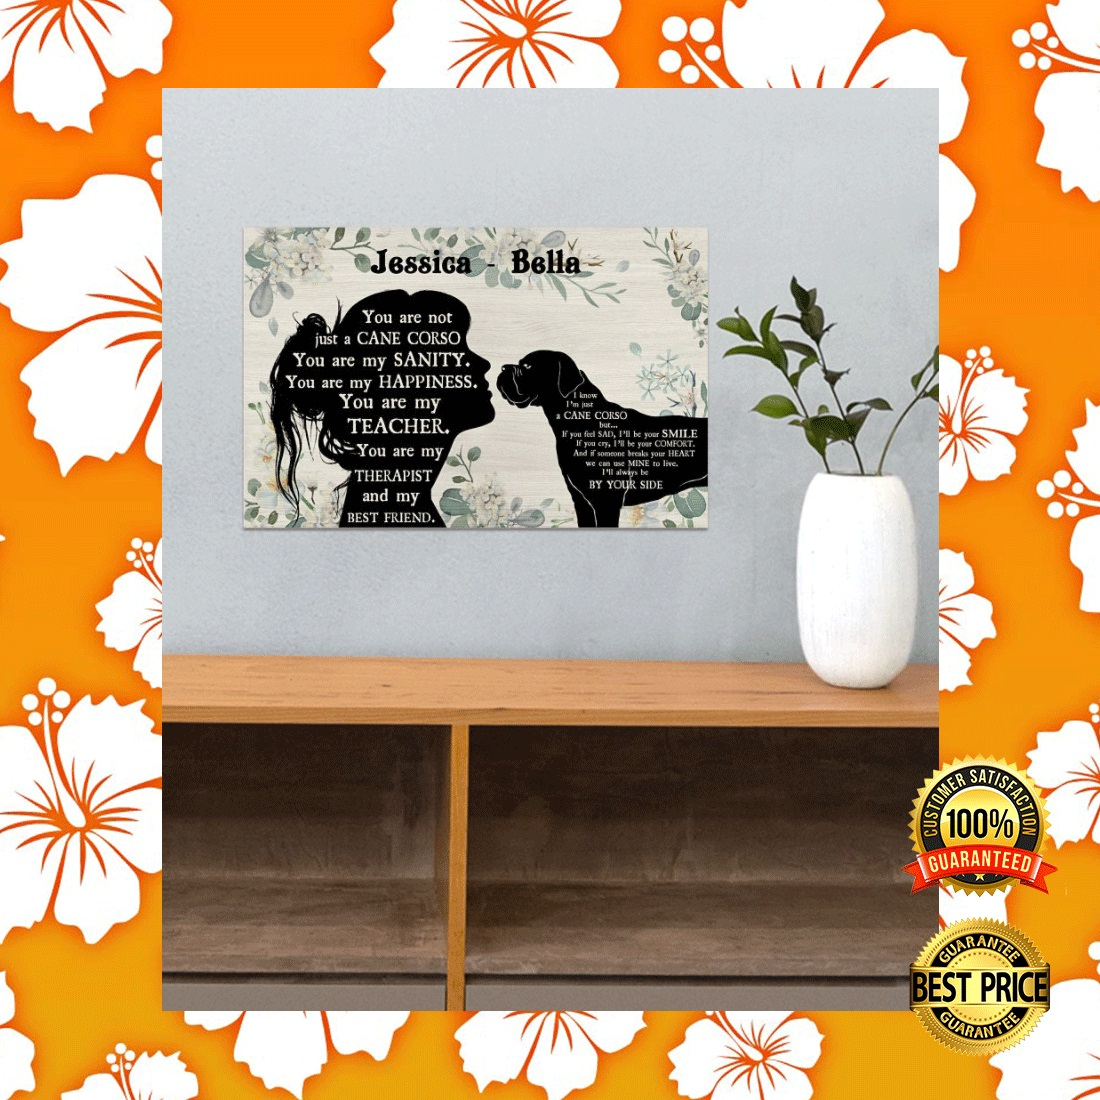 PERSONALIZED GIRL AND CANE CORSE YOU ARE NOT JUST A CANE CORSE POSTER 7